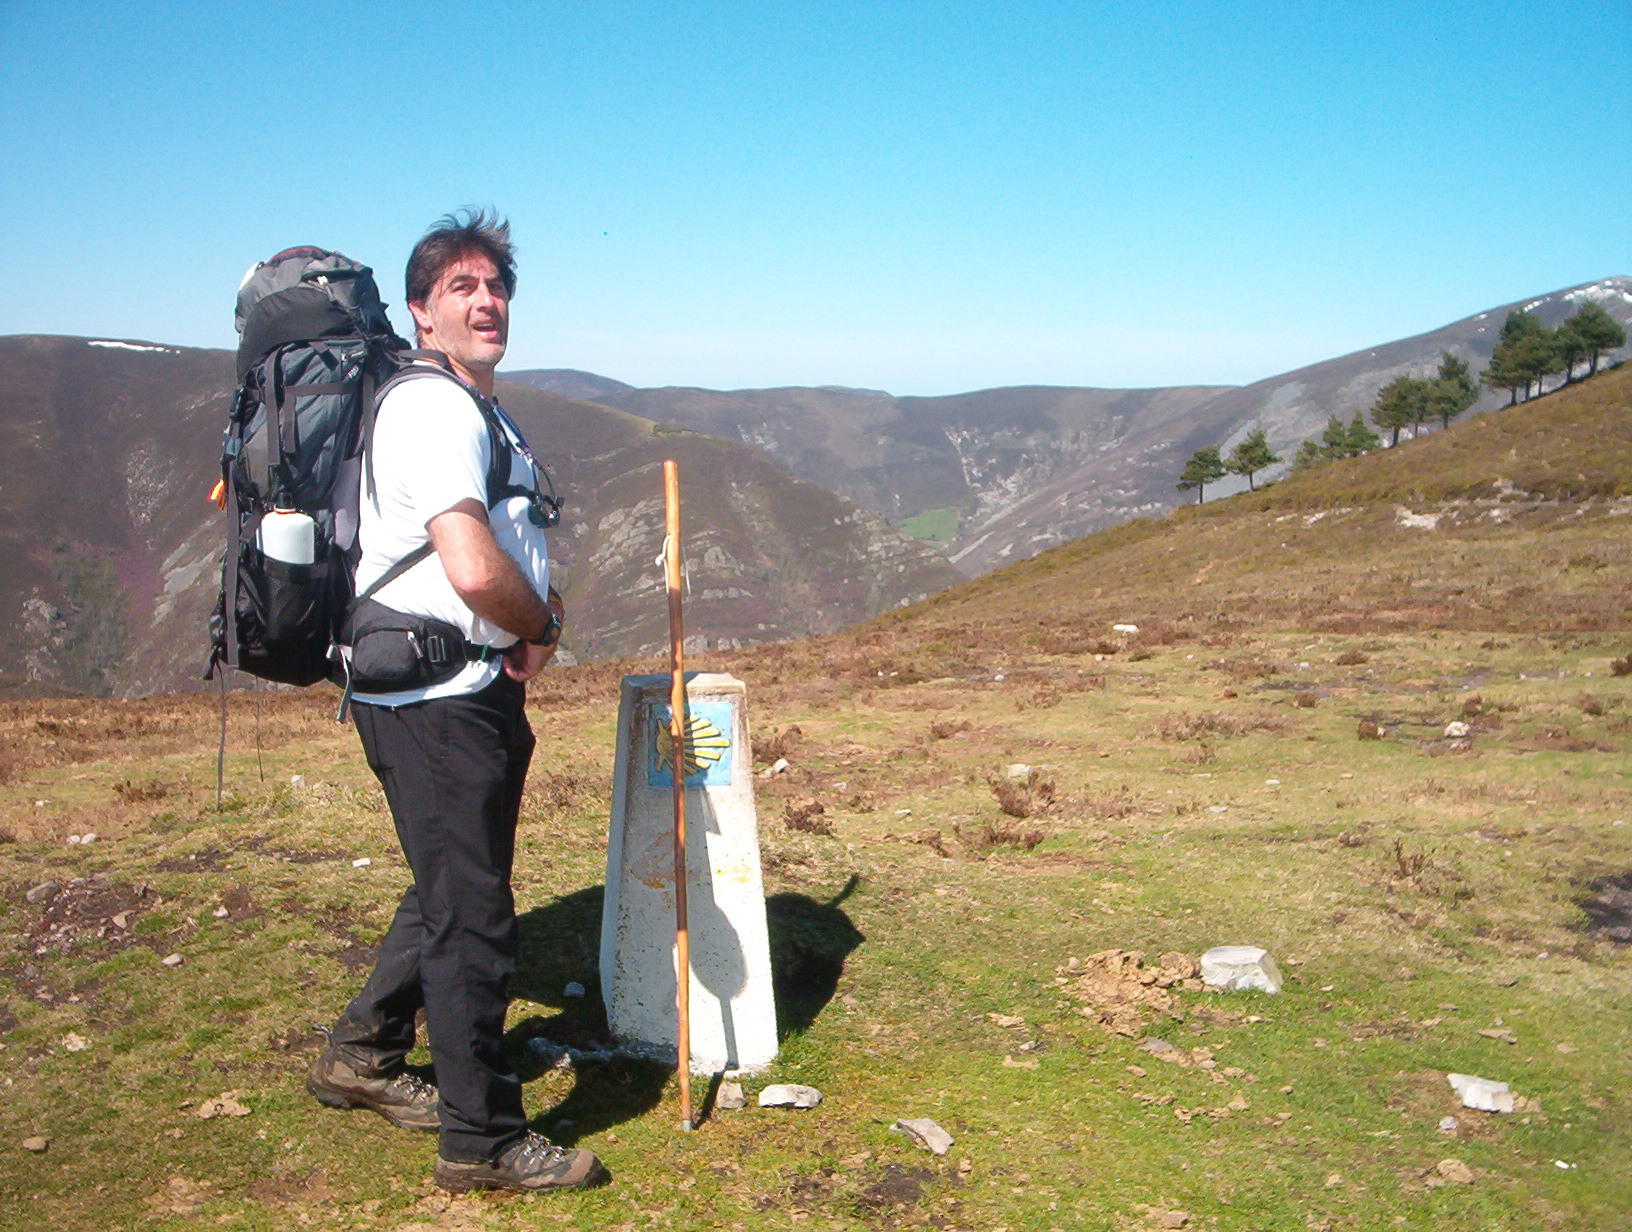 Alan on the Camino